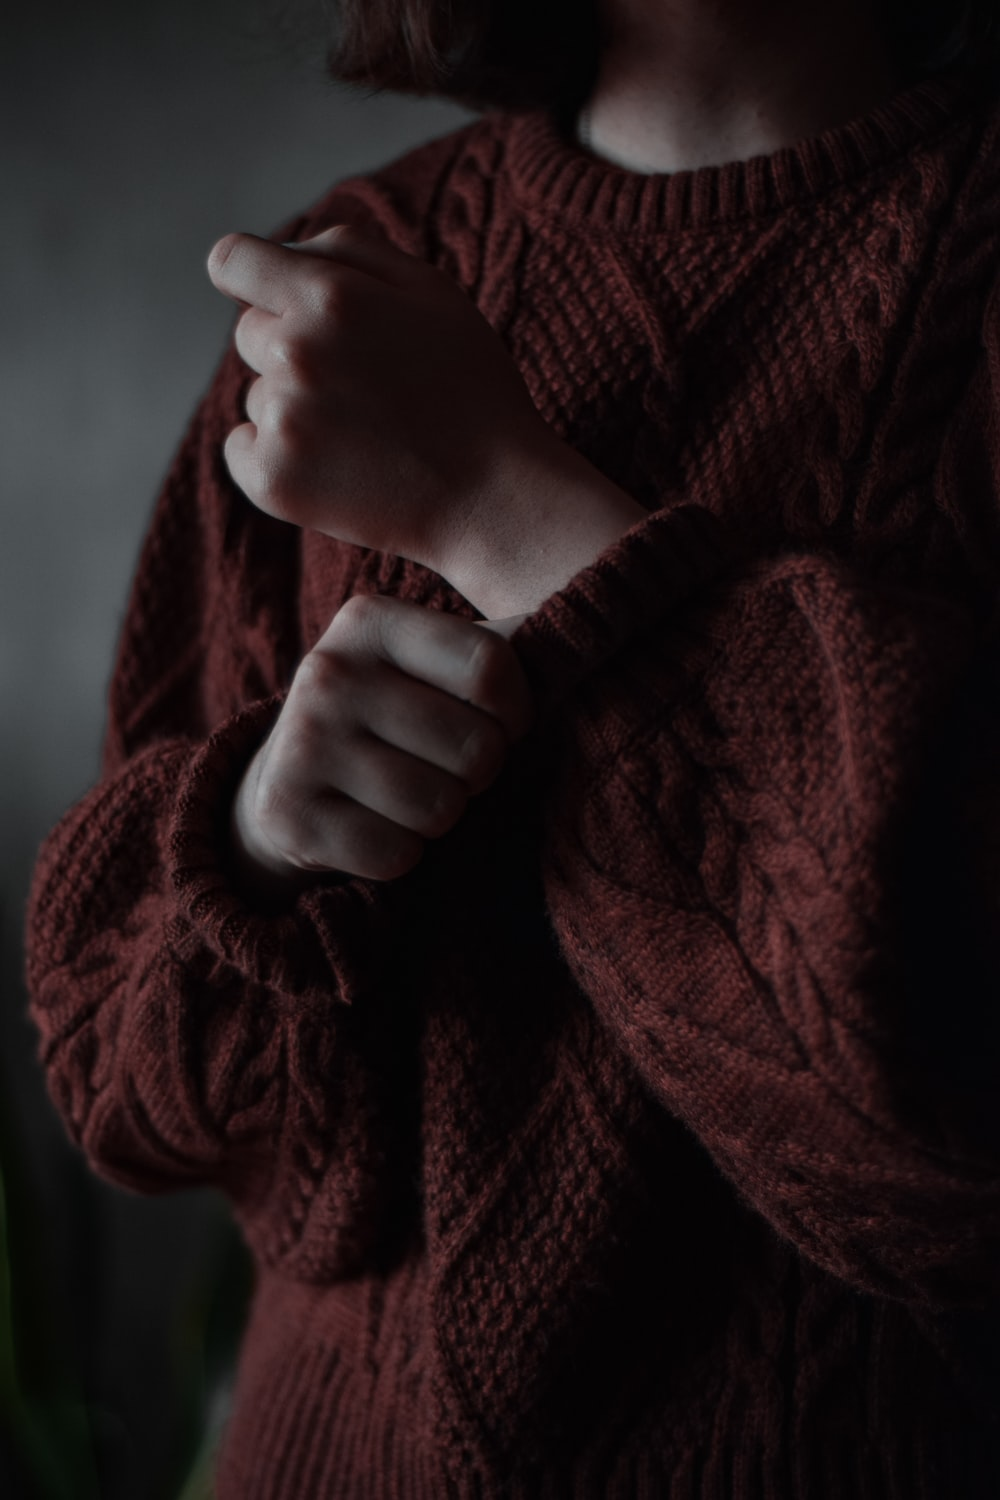 person holding red knit textile